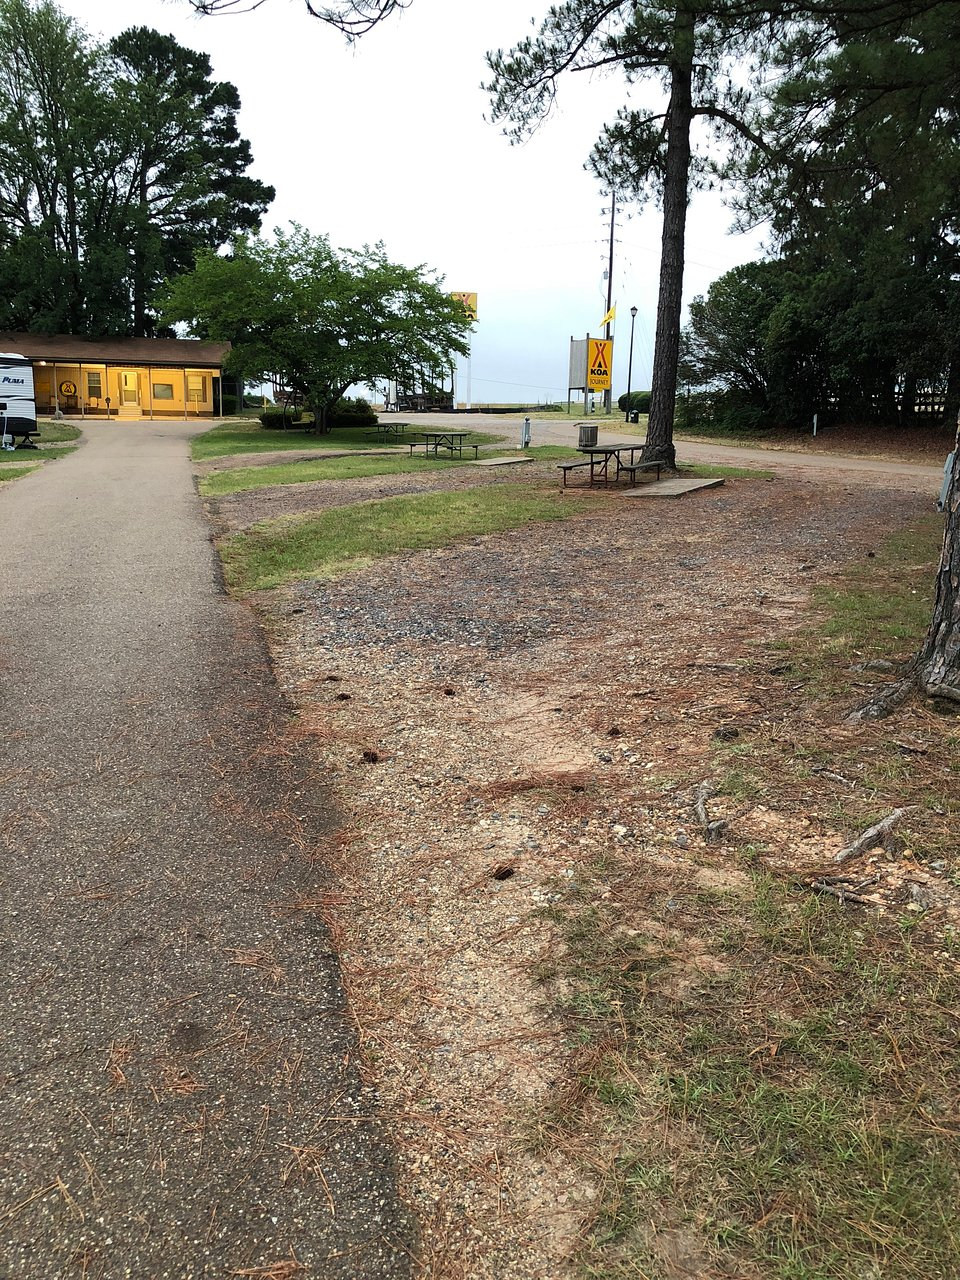 TEXARKANA KOA - Updated 2019 Campground Reviews (TX